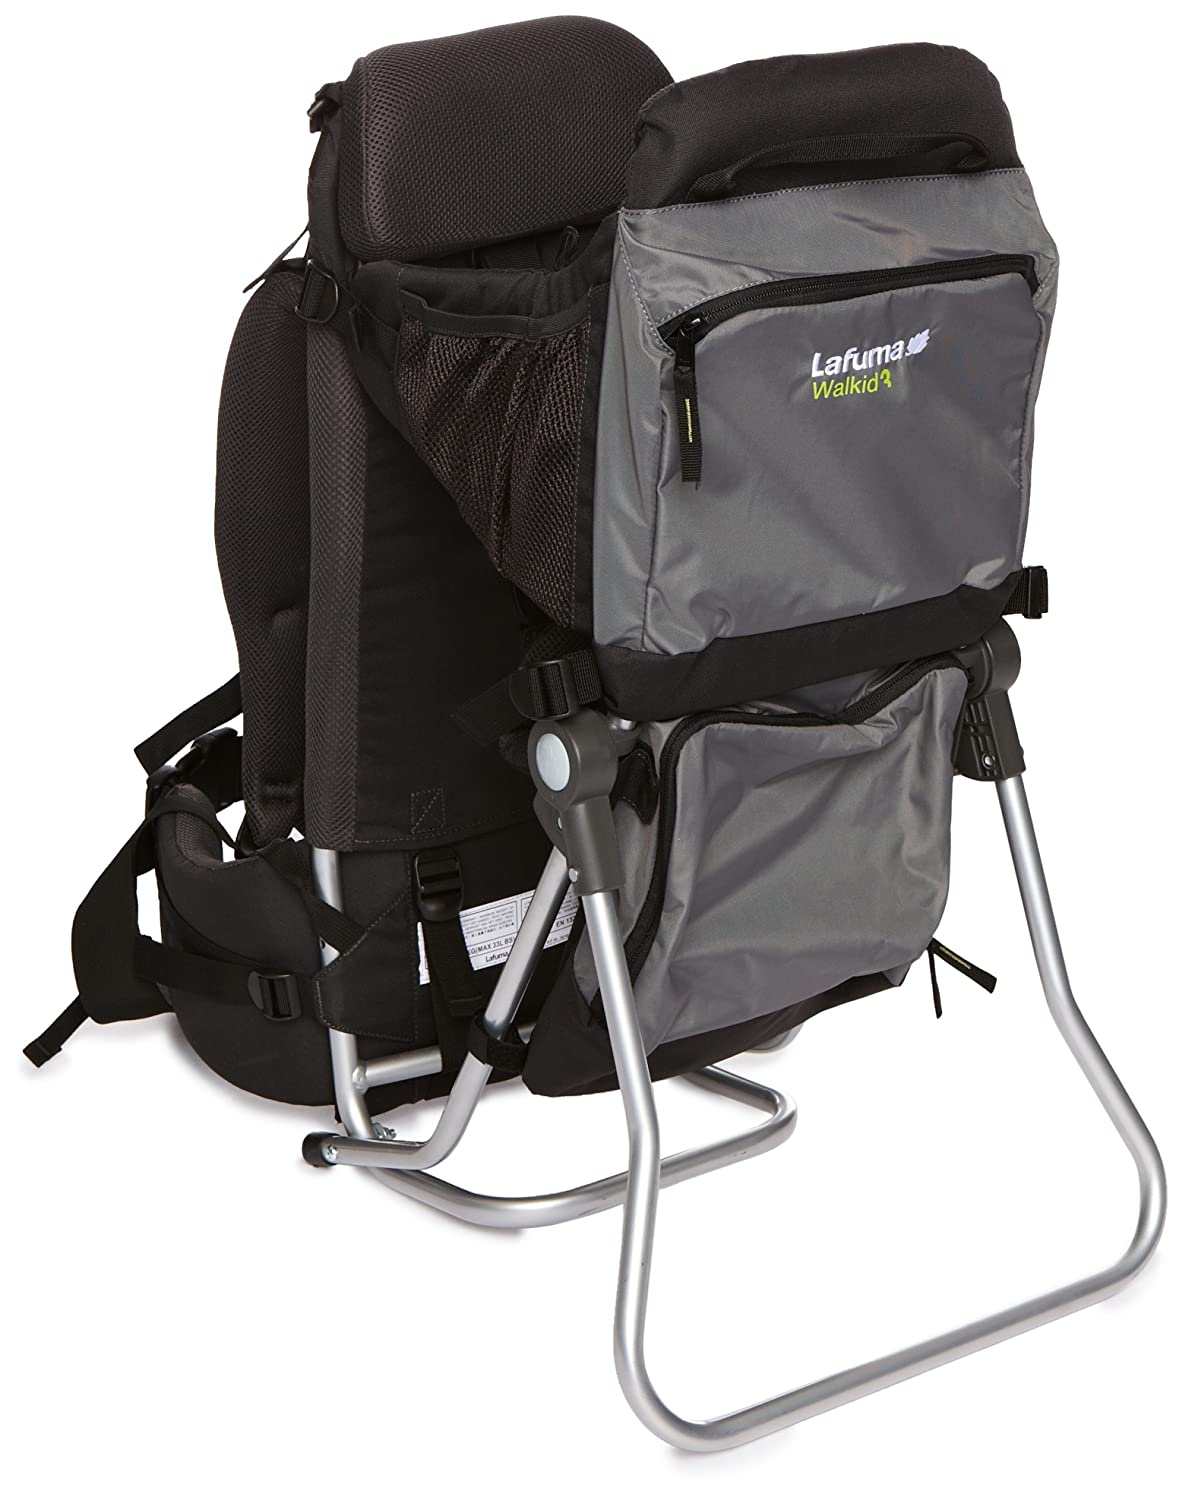 Amazon.com : Lafuma baby carrier Walkid 3 grey/black : Camping Child Carriers : Baby